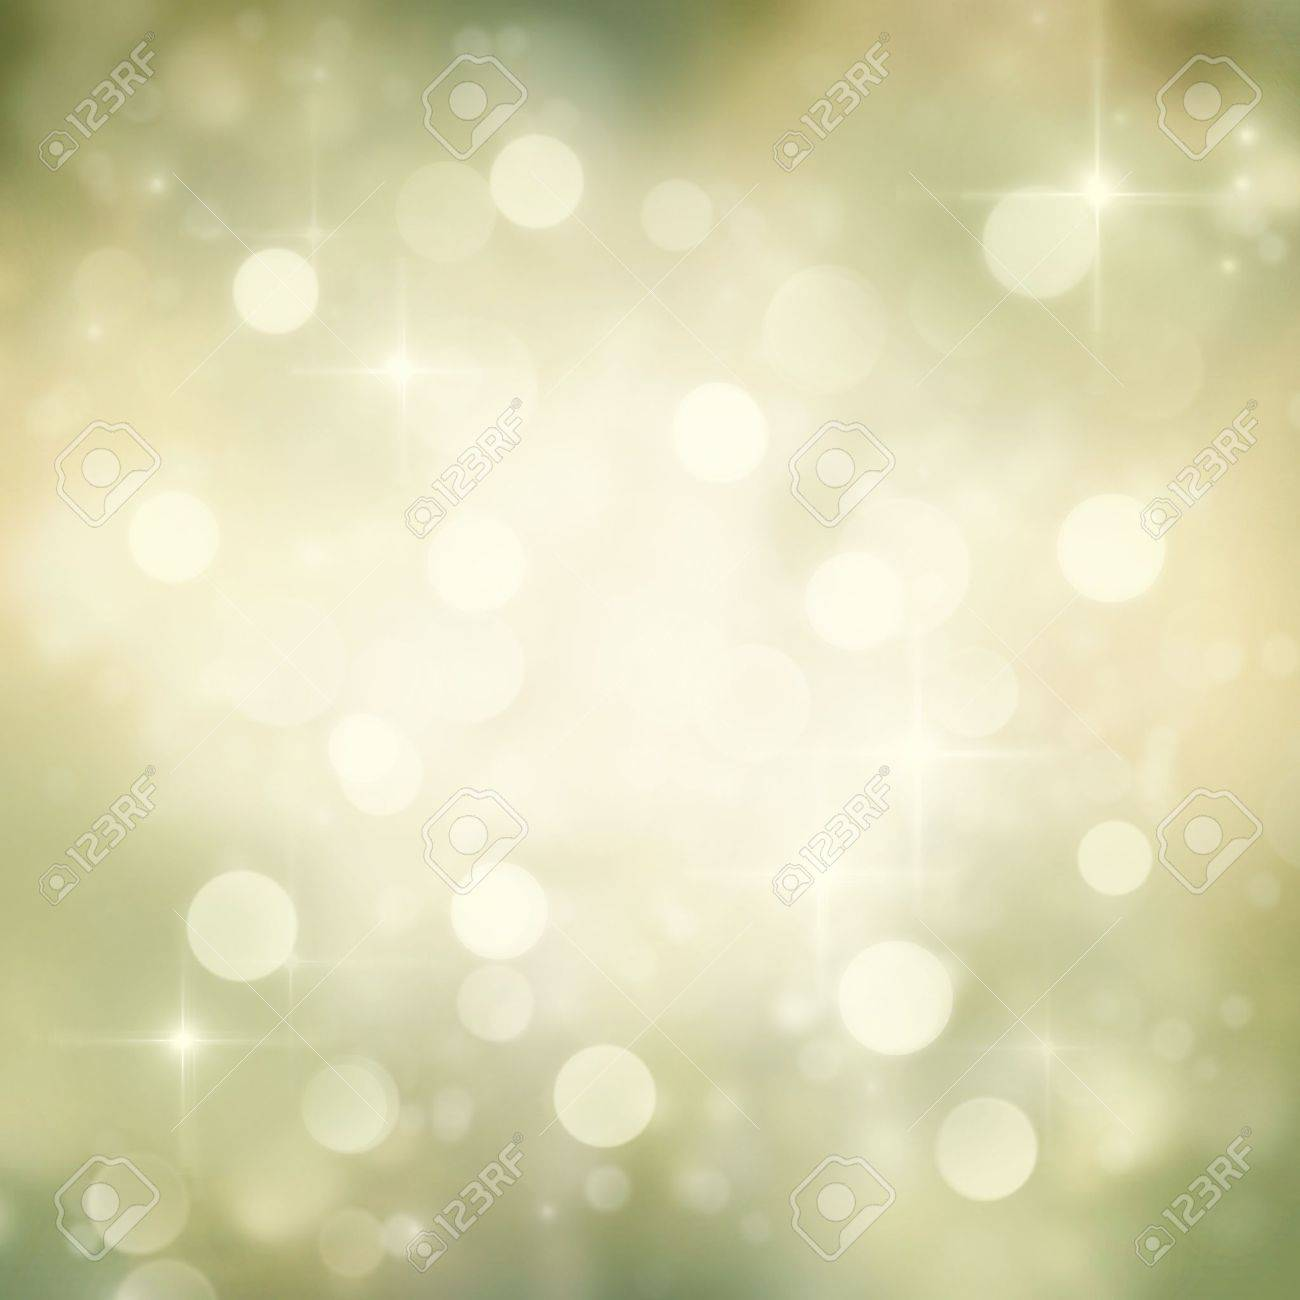 Festive gold Christmas abstract  background with bokeh lights and stars. Stock Photo - 11341640